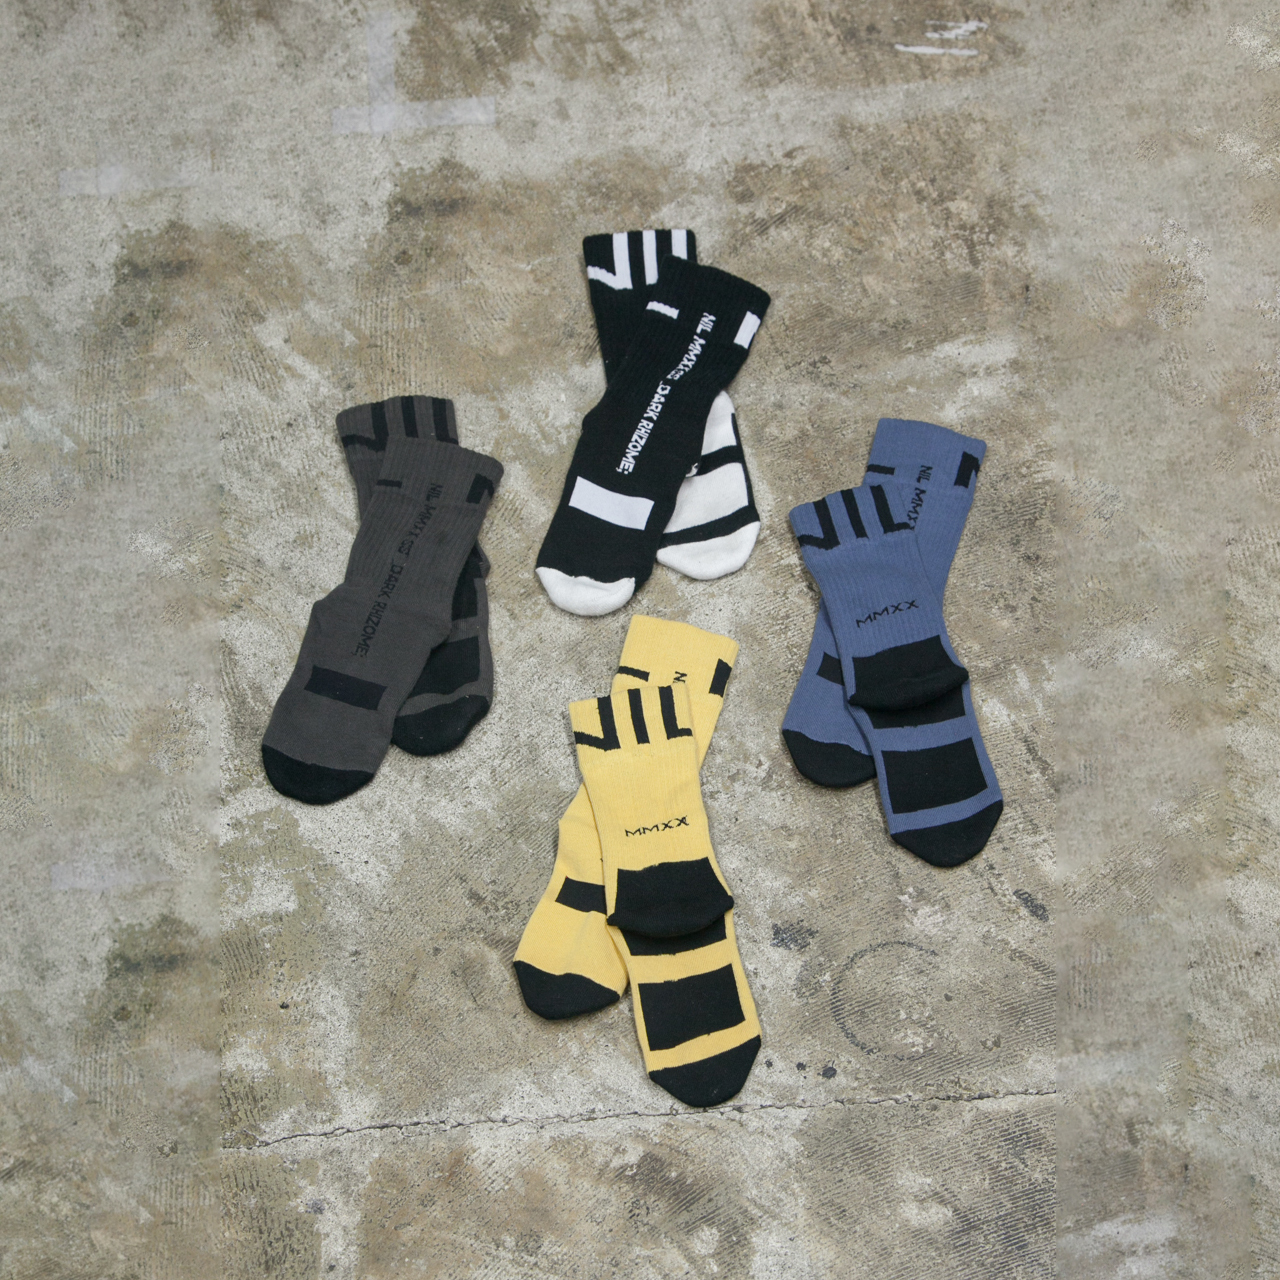 700ACU1-BLACK / CHARCOAL / BLUE GRAY / LIGHT YELLOW / NIL ソックス